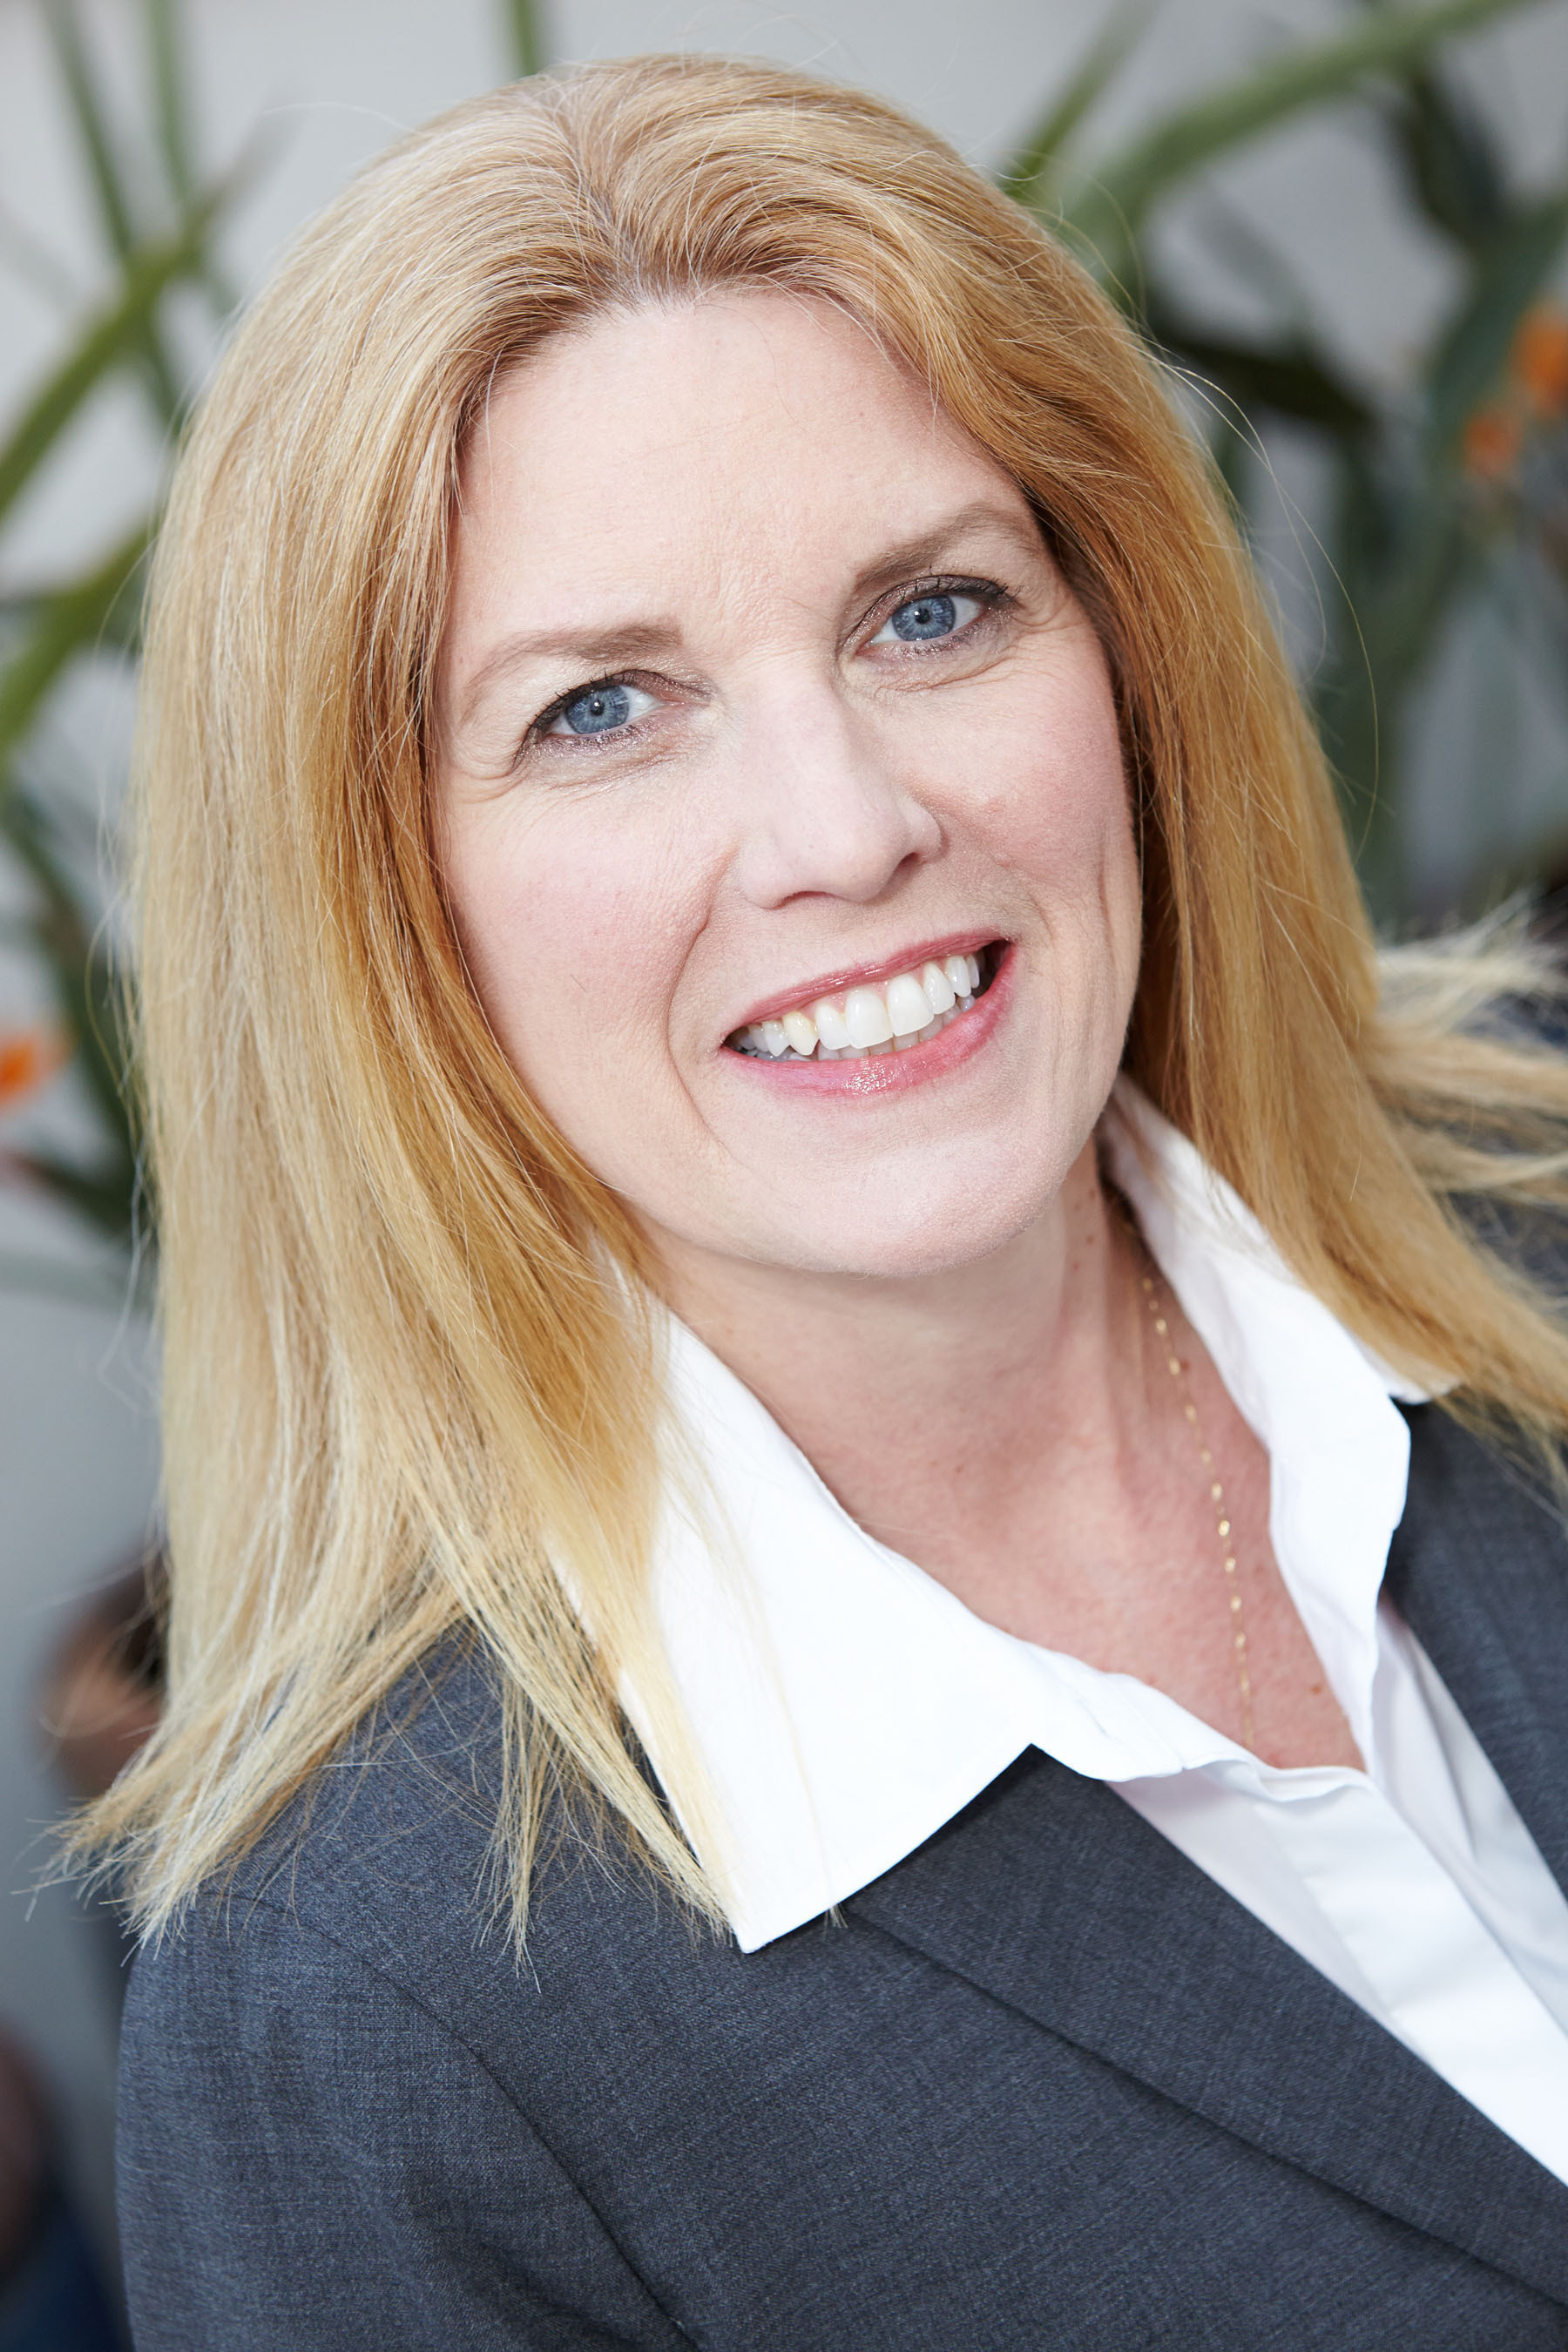 Susan Beebe - founder of Lighthouse Marketing, Inc. and expert in sales, marketing and business ownership for the past 30 years. (PRNewsFoto/Lighthouse Marketing, Inc.) (PRNewsFoto/LIGHTHOUSE MARKETING, INC.)